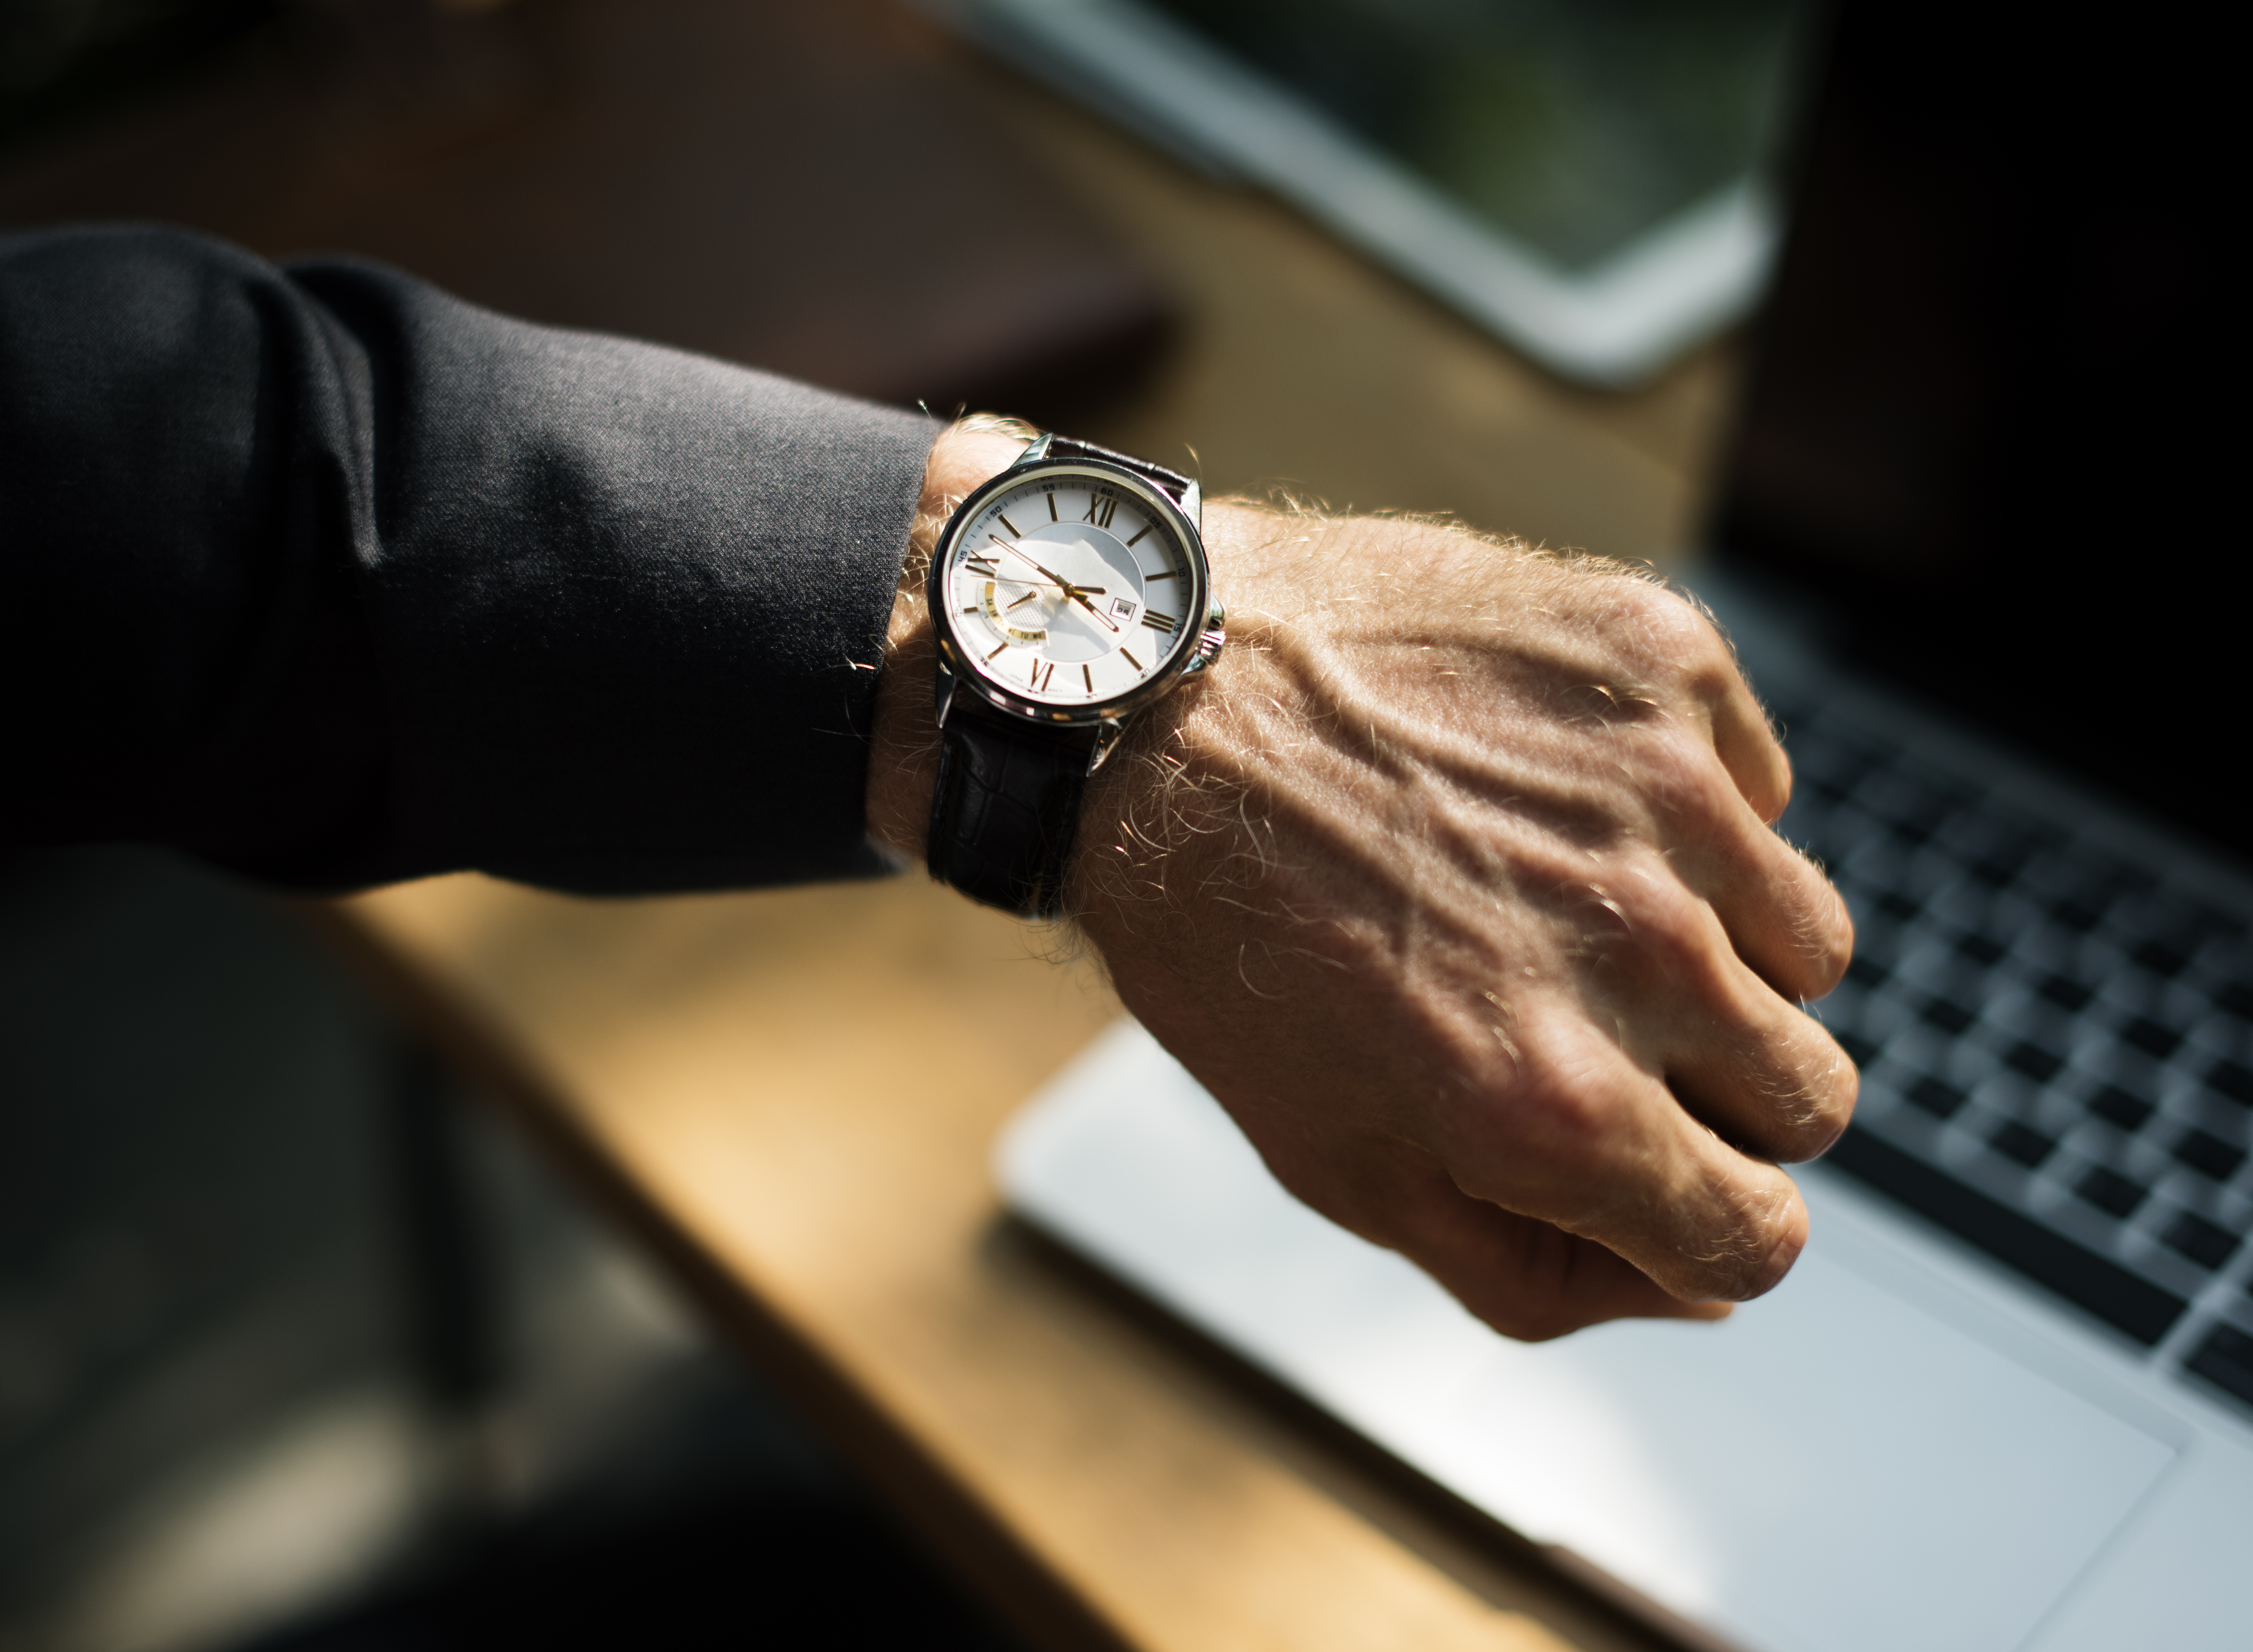 What the experts are saying about time management